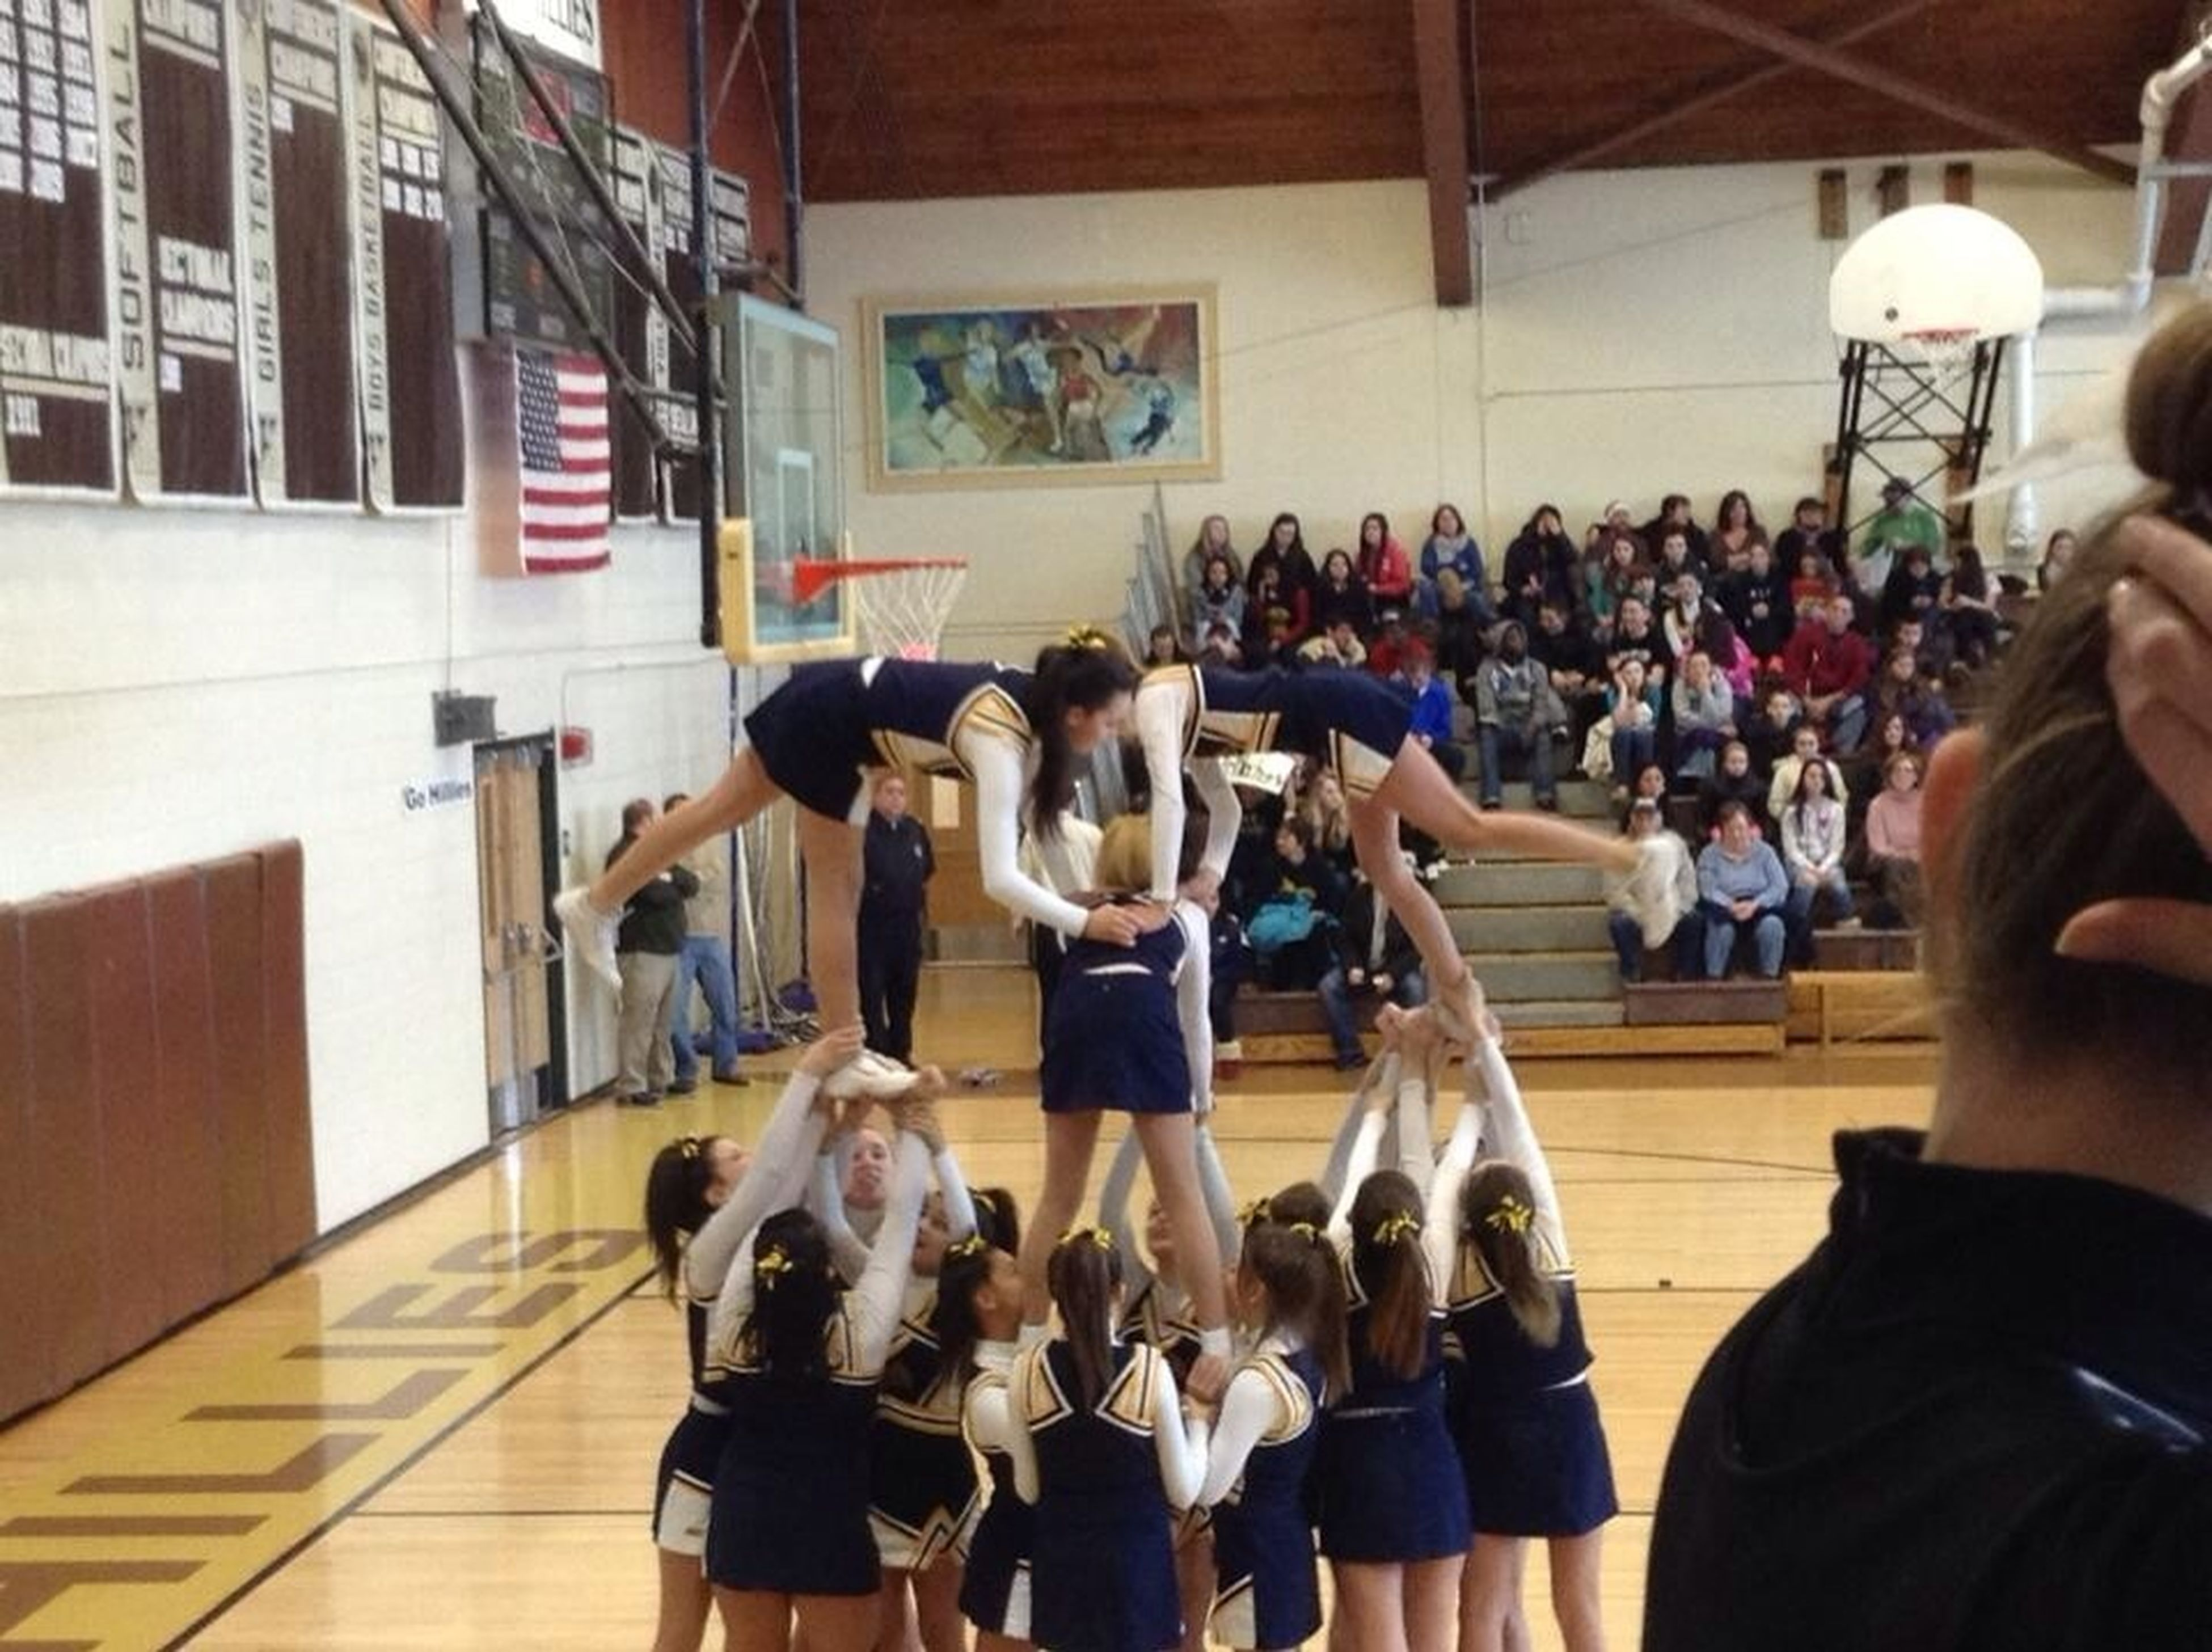 Our Cheer Stunt